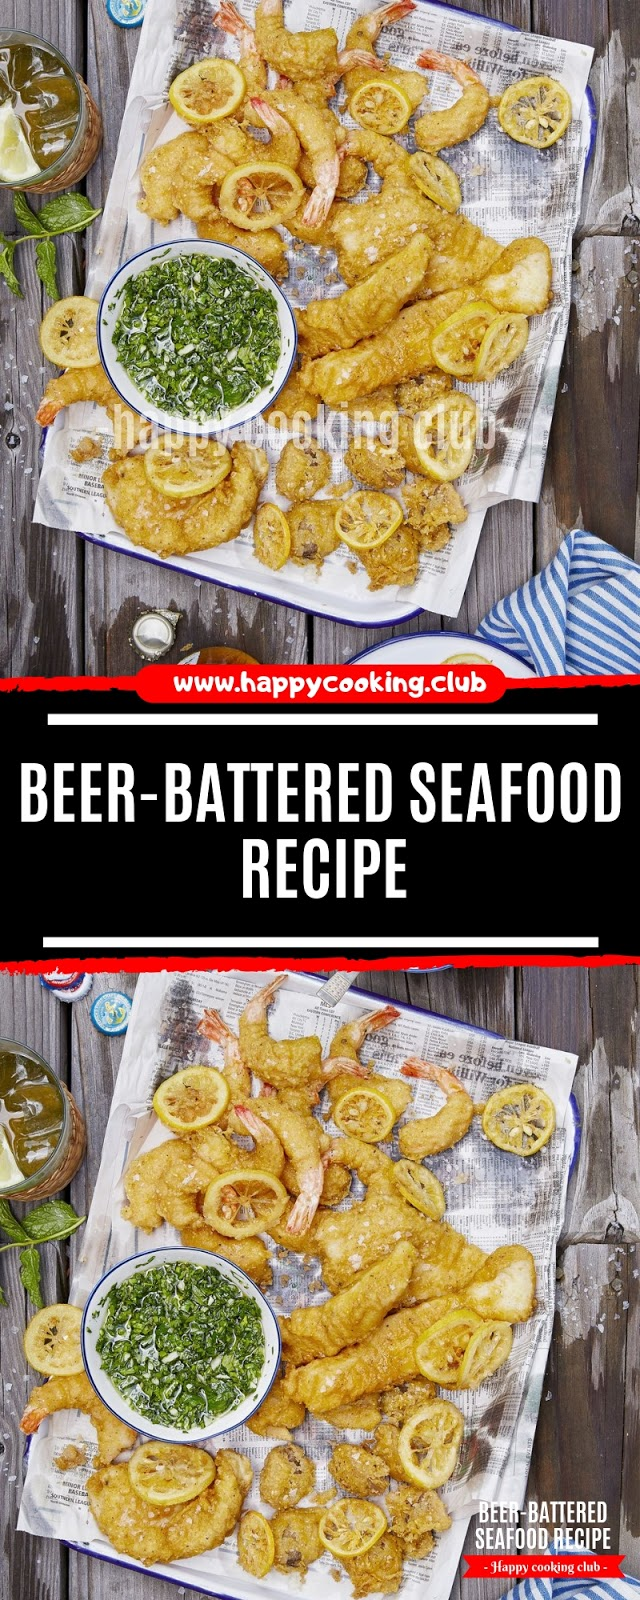 Beer-Battered Seafood Recipe